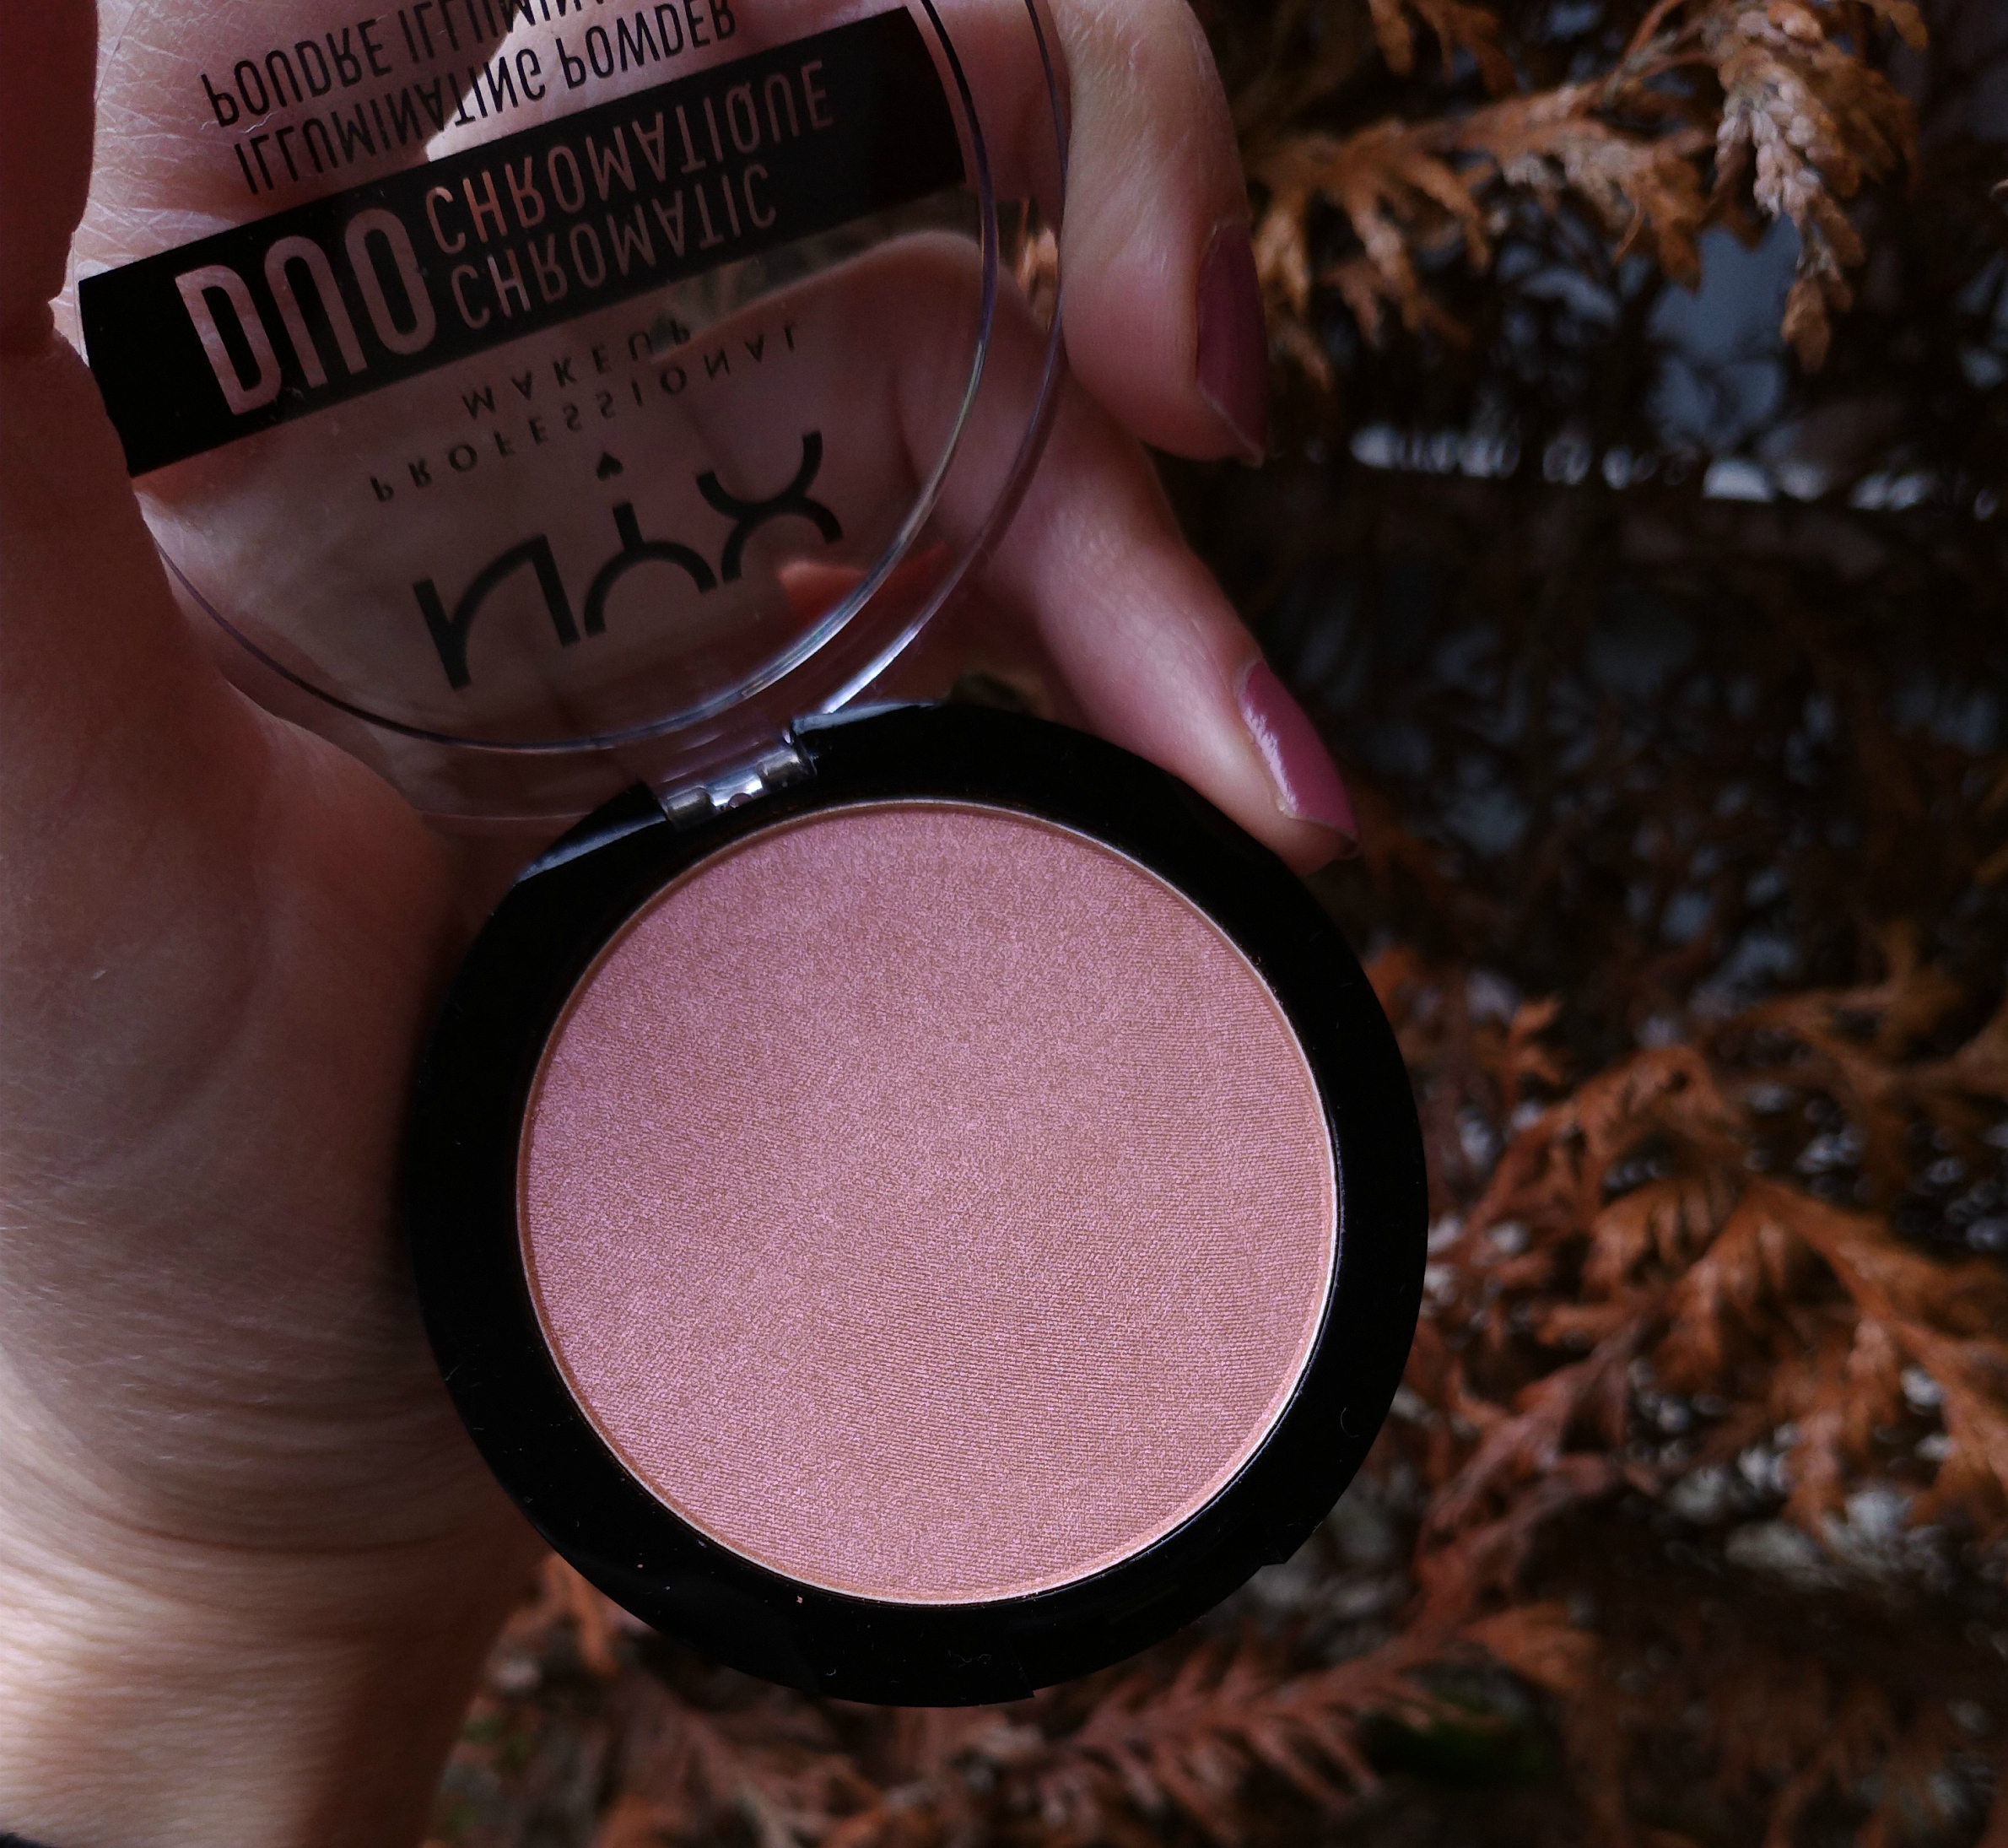 poudre illuminatrice duo chromatic nyx crushed bloom